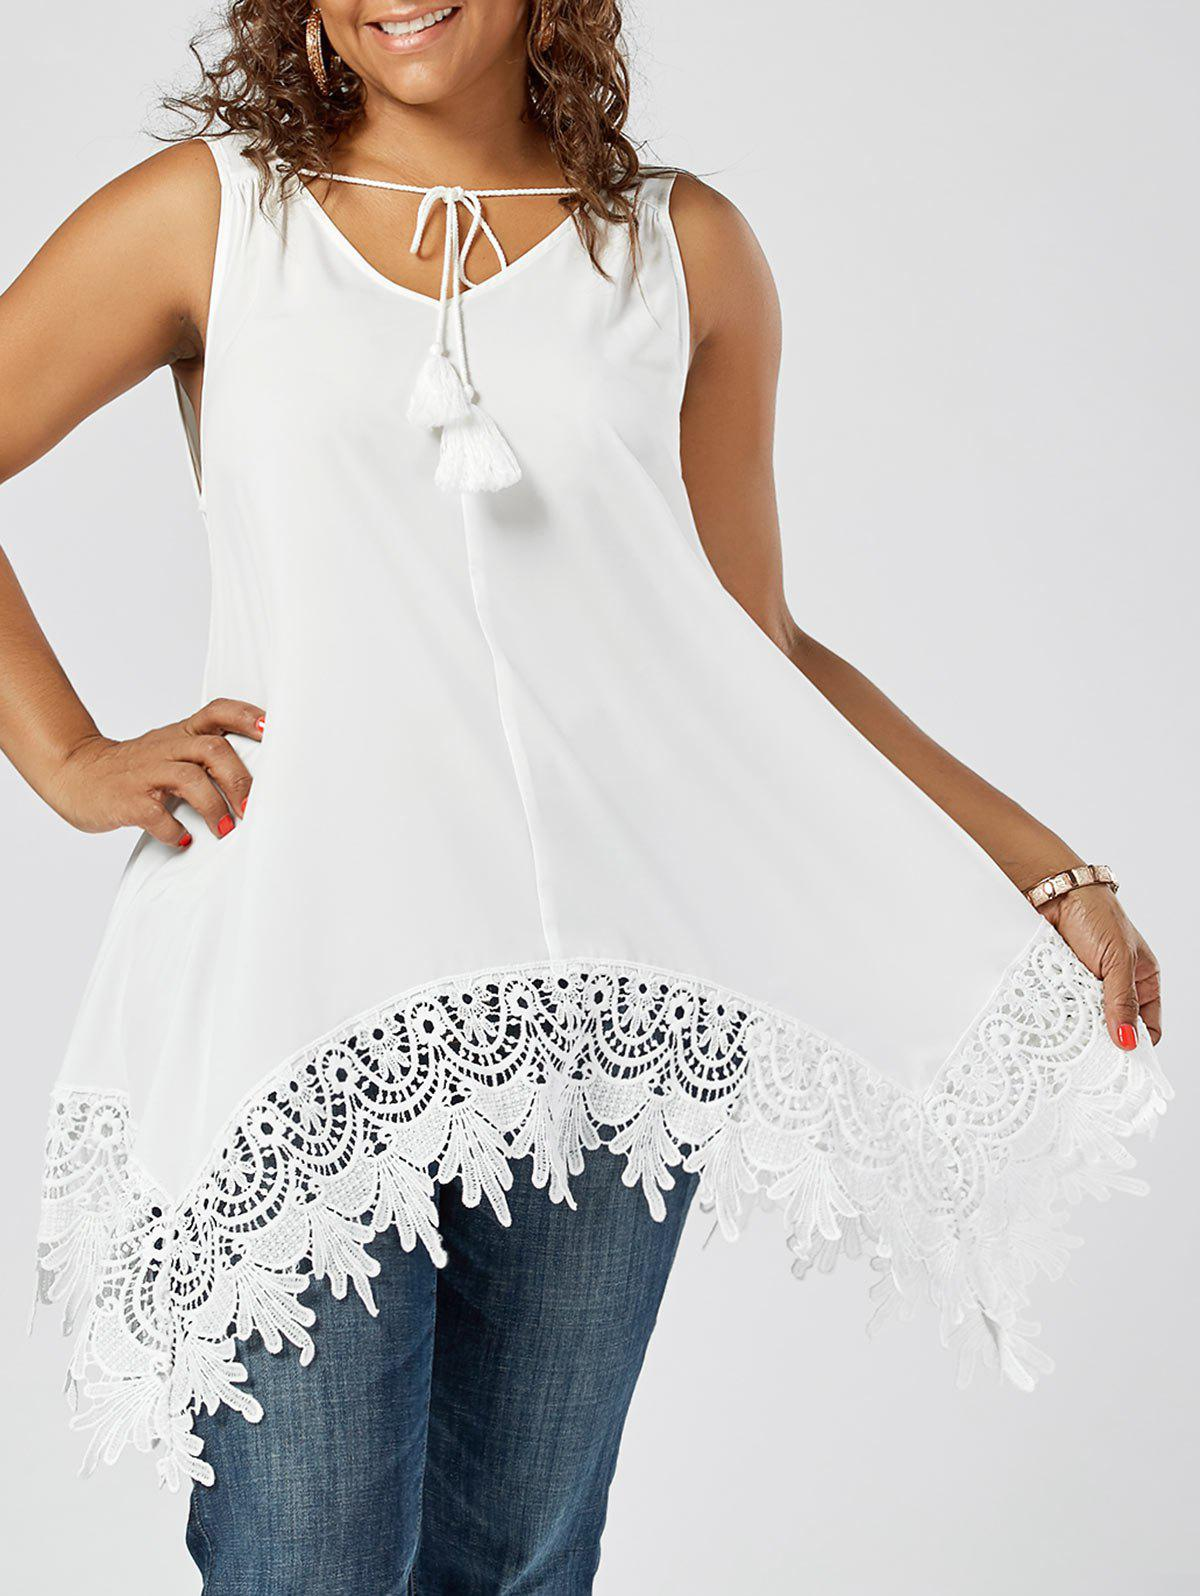 Lace Insert Plus Size TopWOMEN<br><br>Size: 2XL; Color: WHITE; Material: Polyester; Shirt Length: Long; Sleeve Length: Sleeveless; Collar: V-Neck; Style: Fashion; Season: Summer; Pattern Type: Patchwork; Weight: 0.2100kg; Package Contents: 1 x Top;